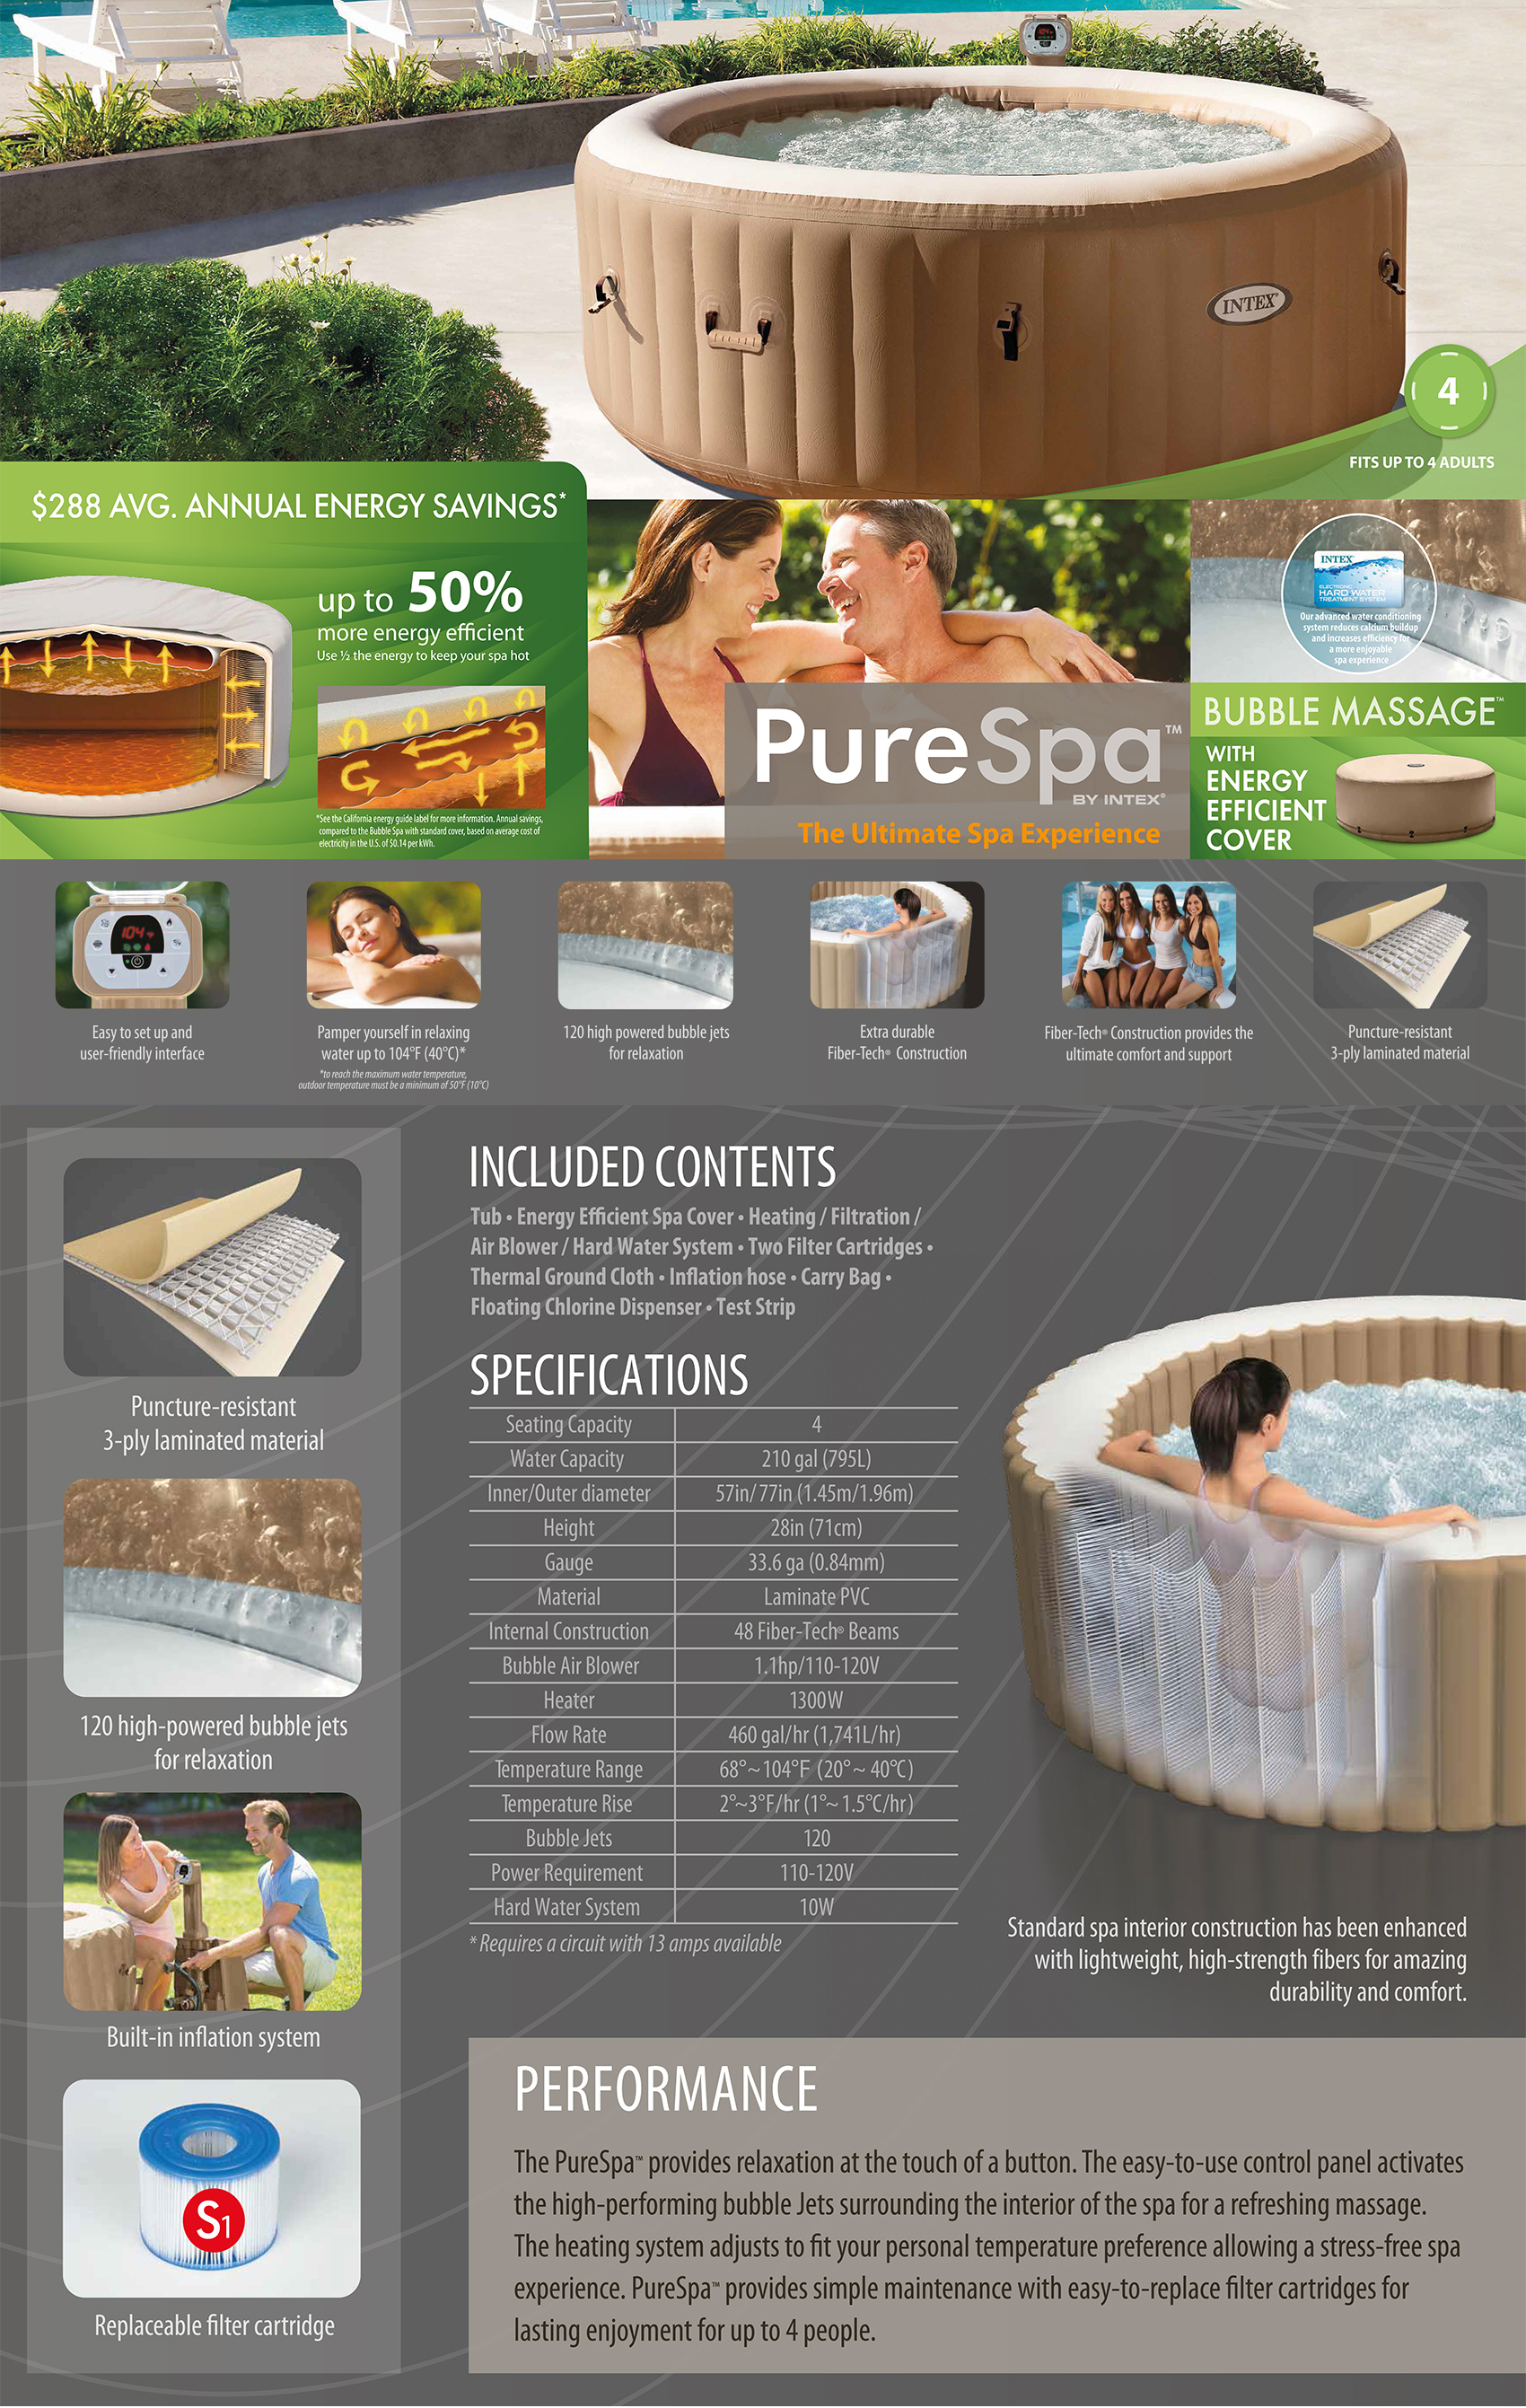 77in X 28in PureSpa Bubble Massage Spa with Energy Efficient Spa Cover